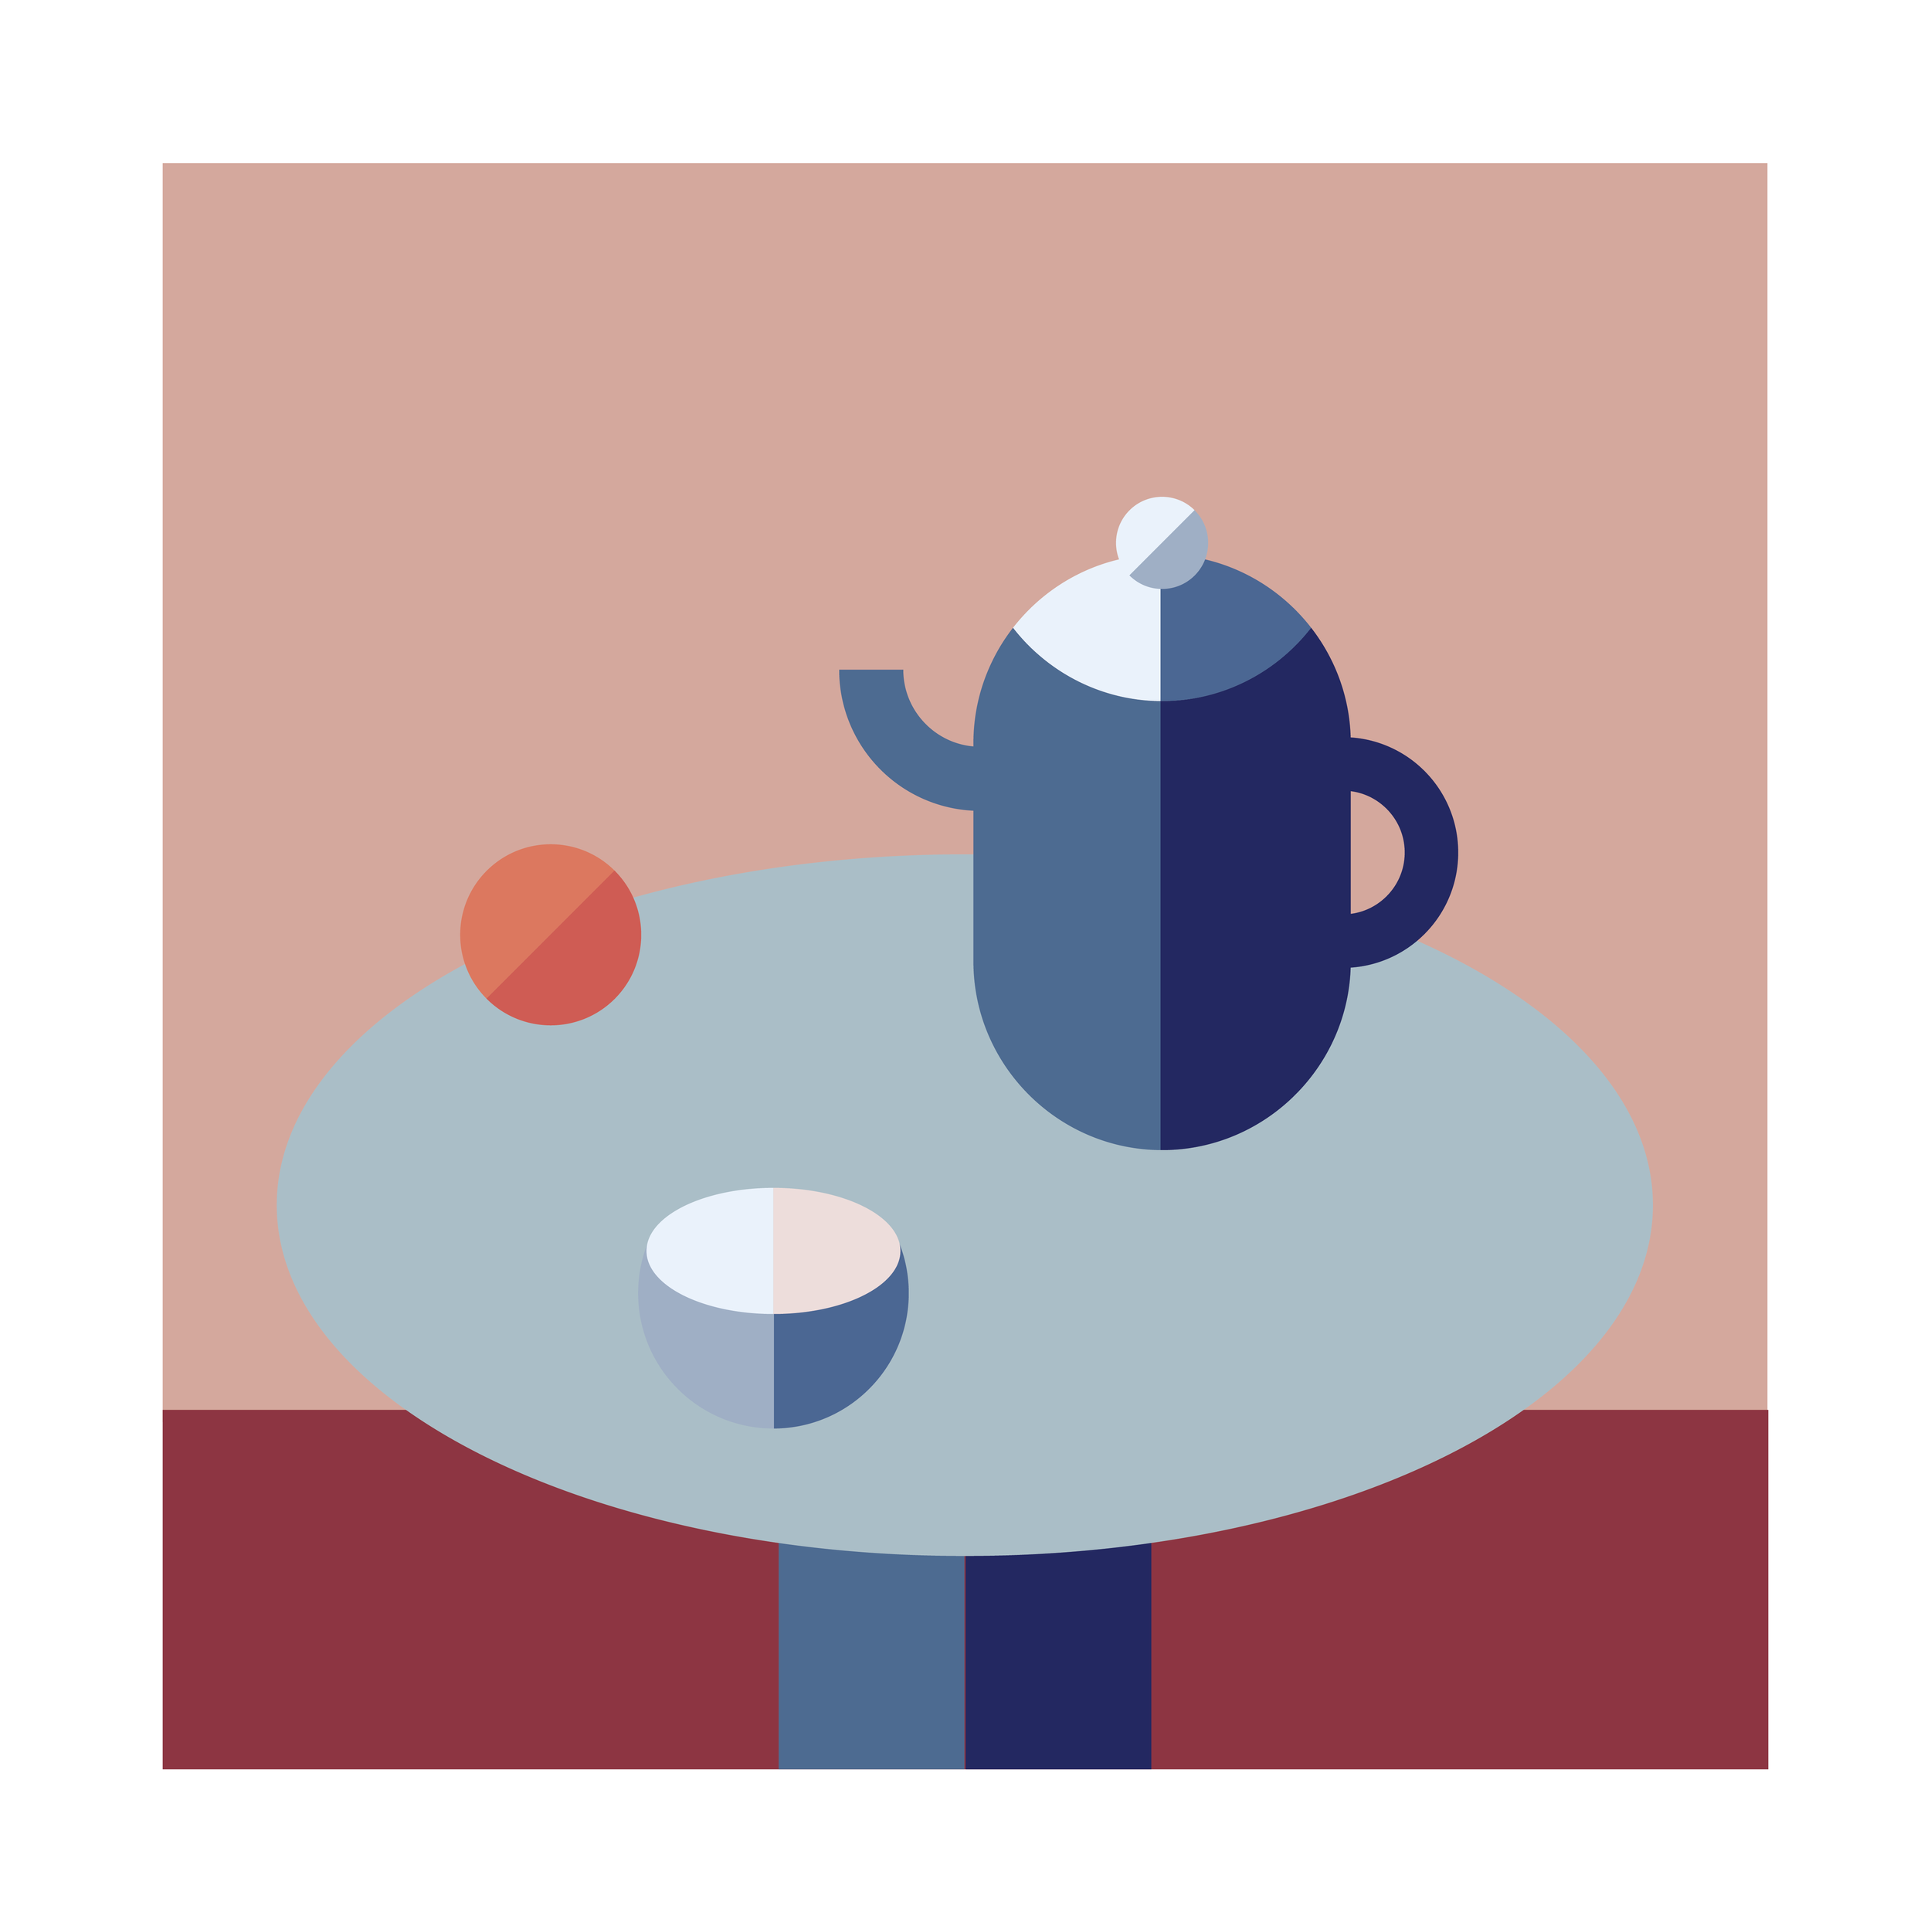 teapot_neutral-01.png